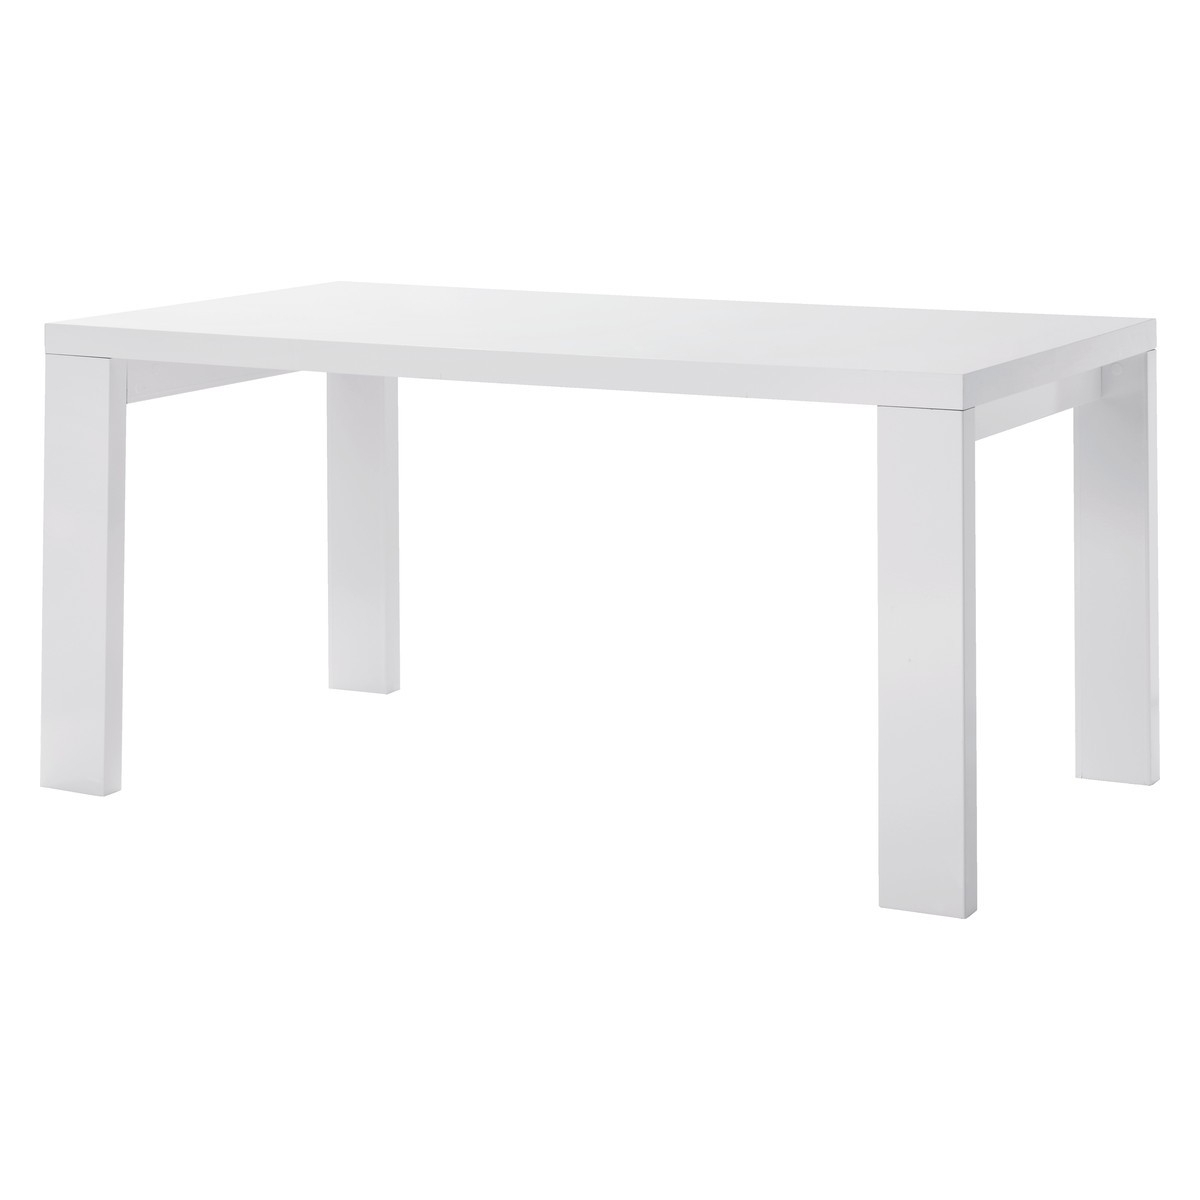 Buy Now At Habitat Uk For Fashionable White Gloss Dining Tables (Gallery 6 of 25)